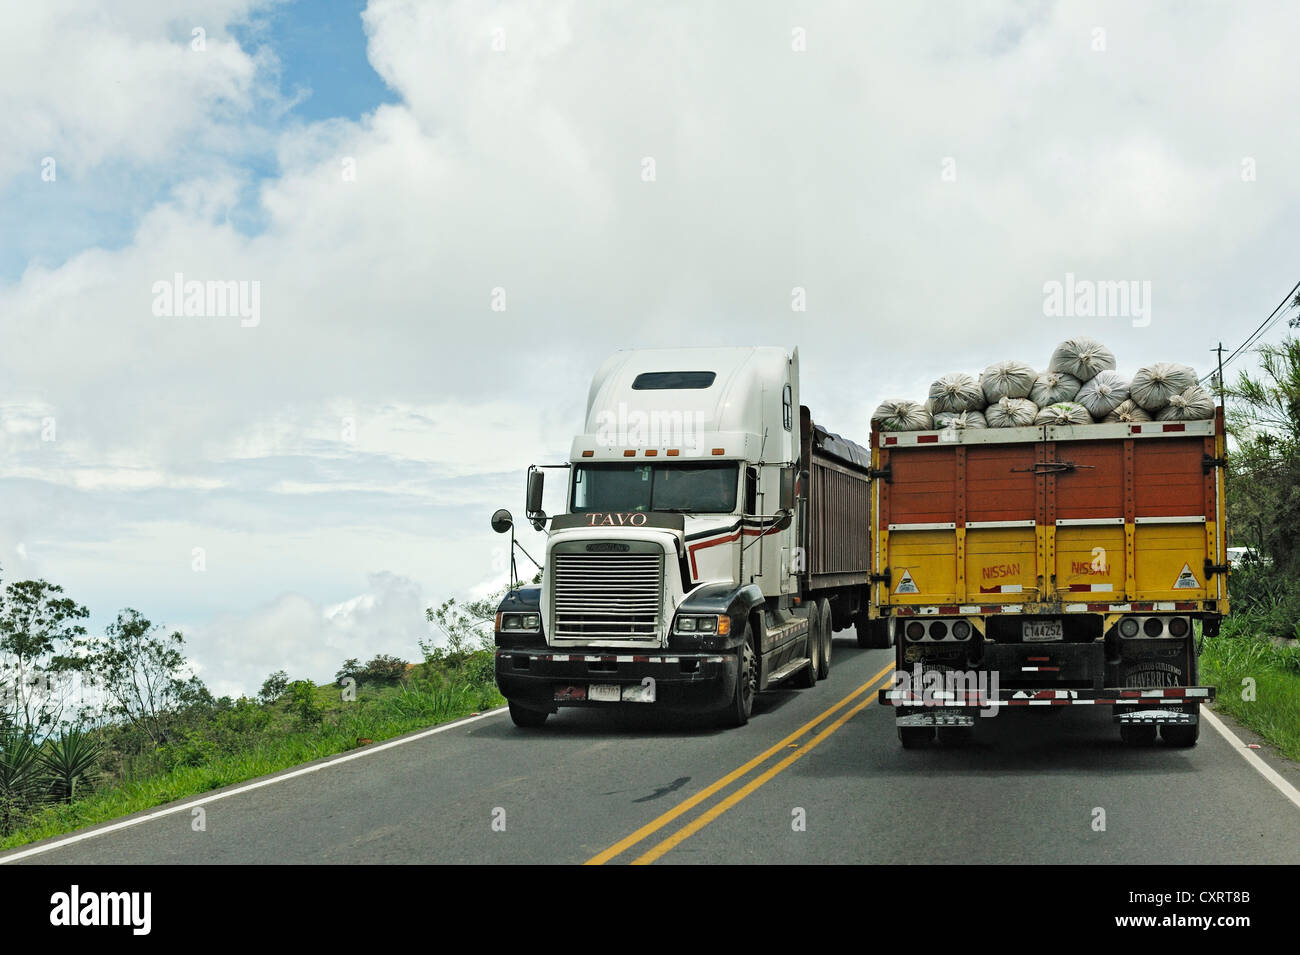 Heavy vehicle traffic, between Monte Verde and San Jose, Alajuela Province, Costa Rica, Central America - Stock Image